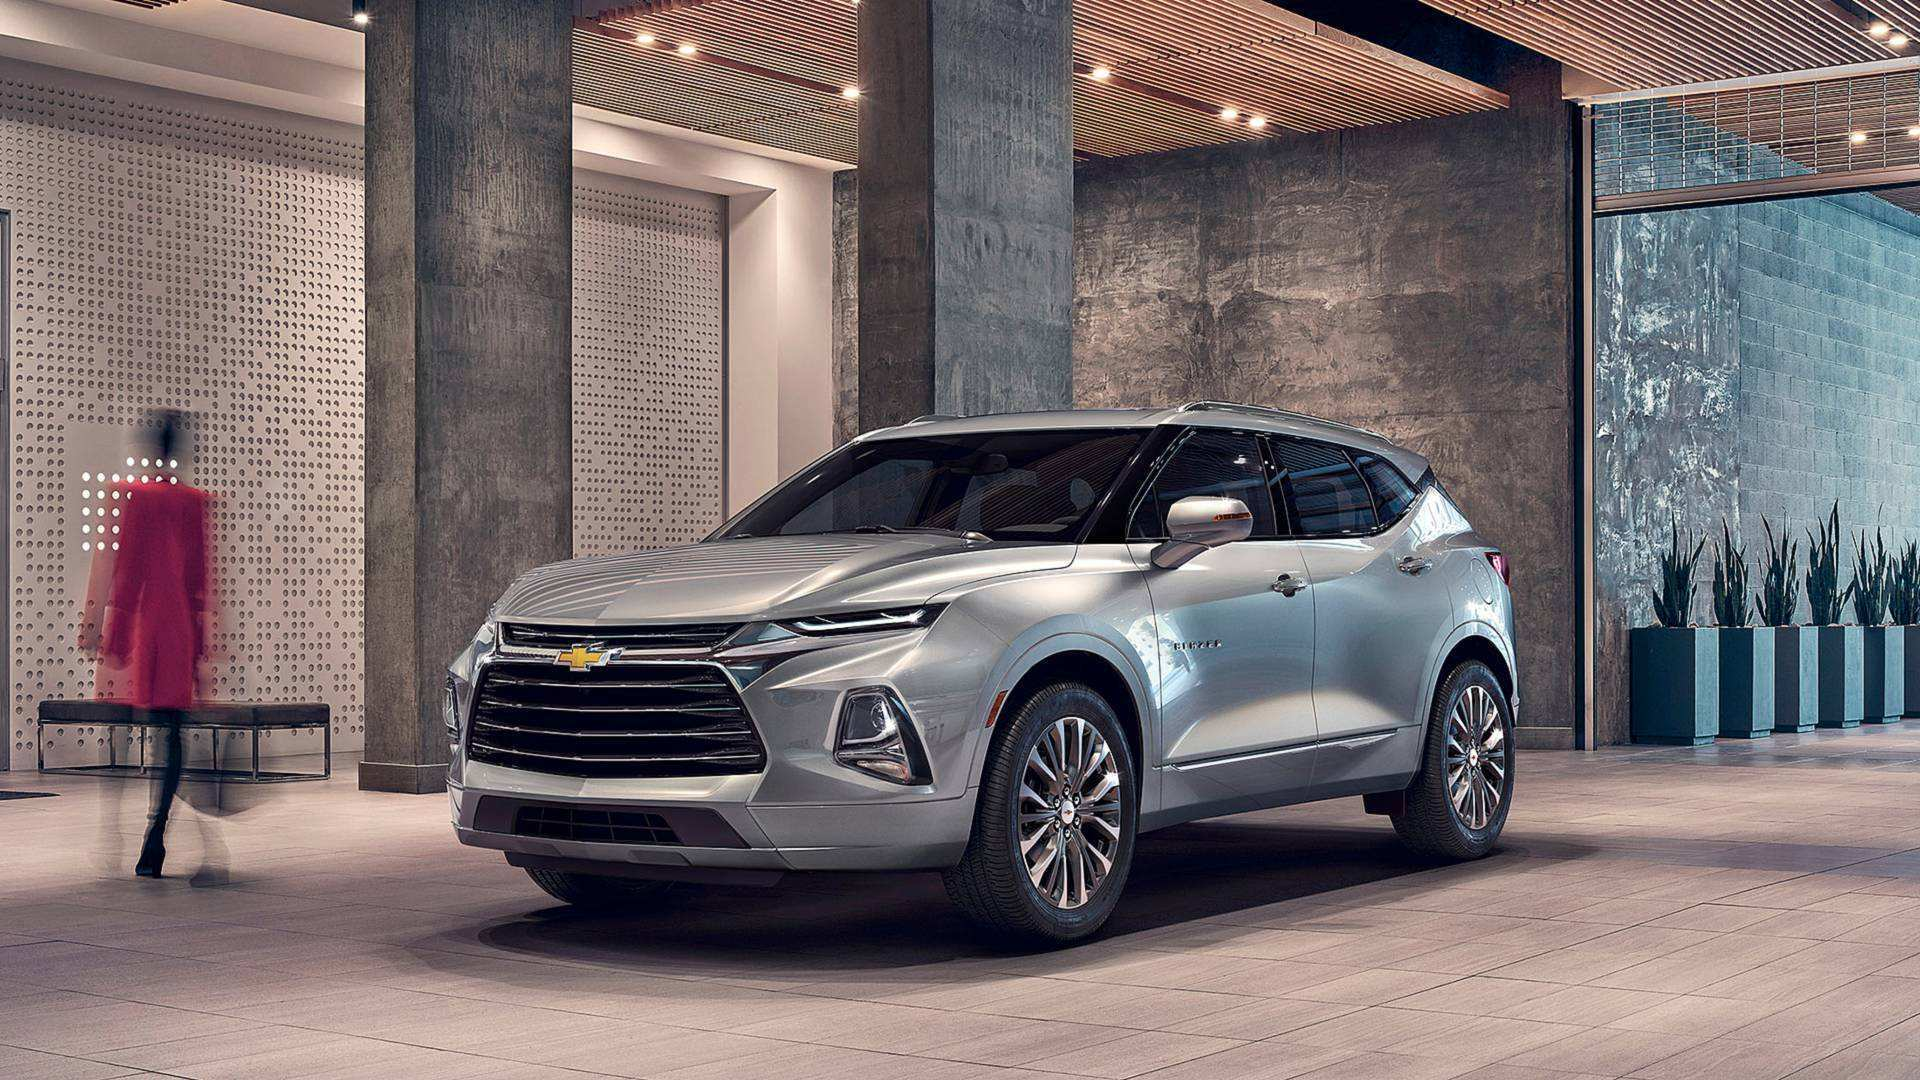 27 Best 2020 Chevy Blazer Wallpaper